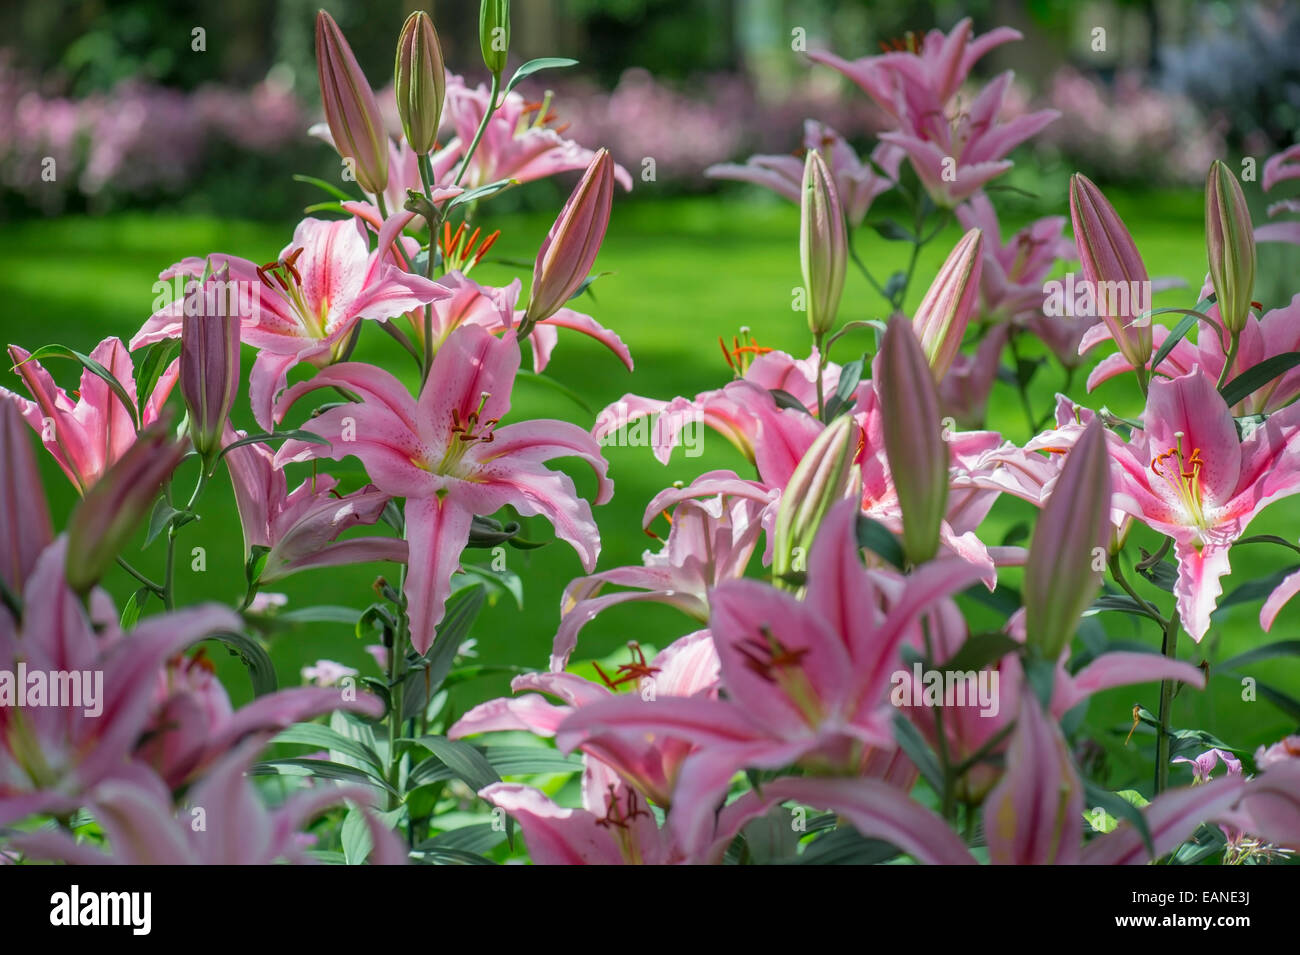 Tiger Lilies Flowers Stock Photos Tiger Lilies Flowers Stock